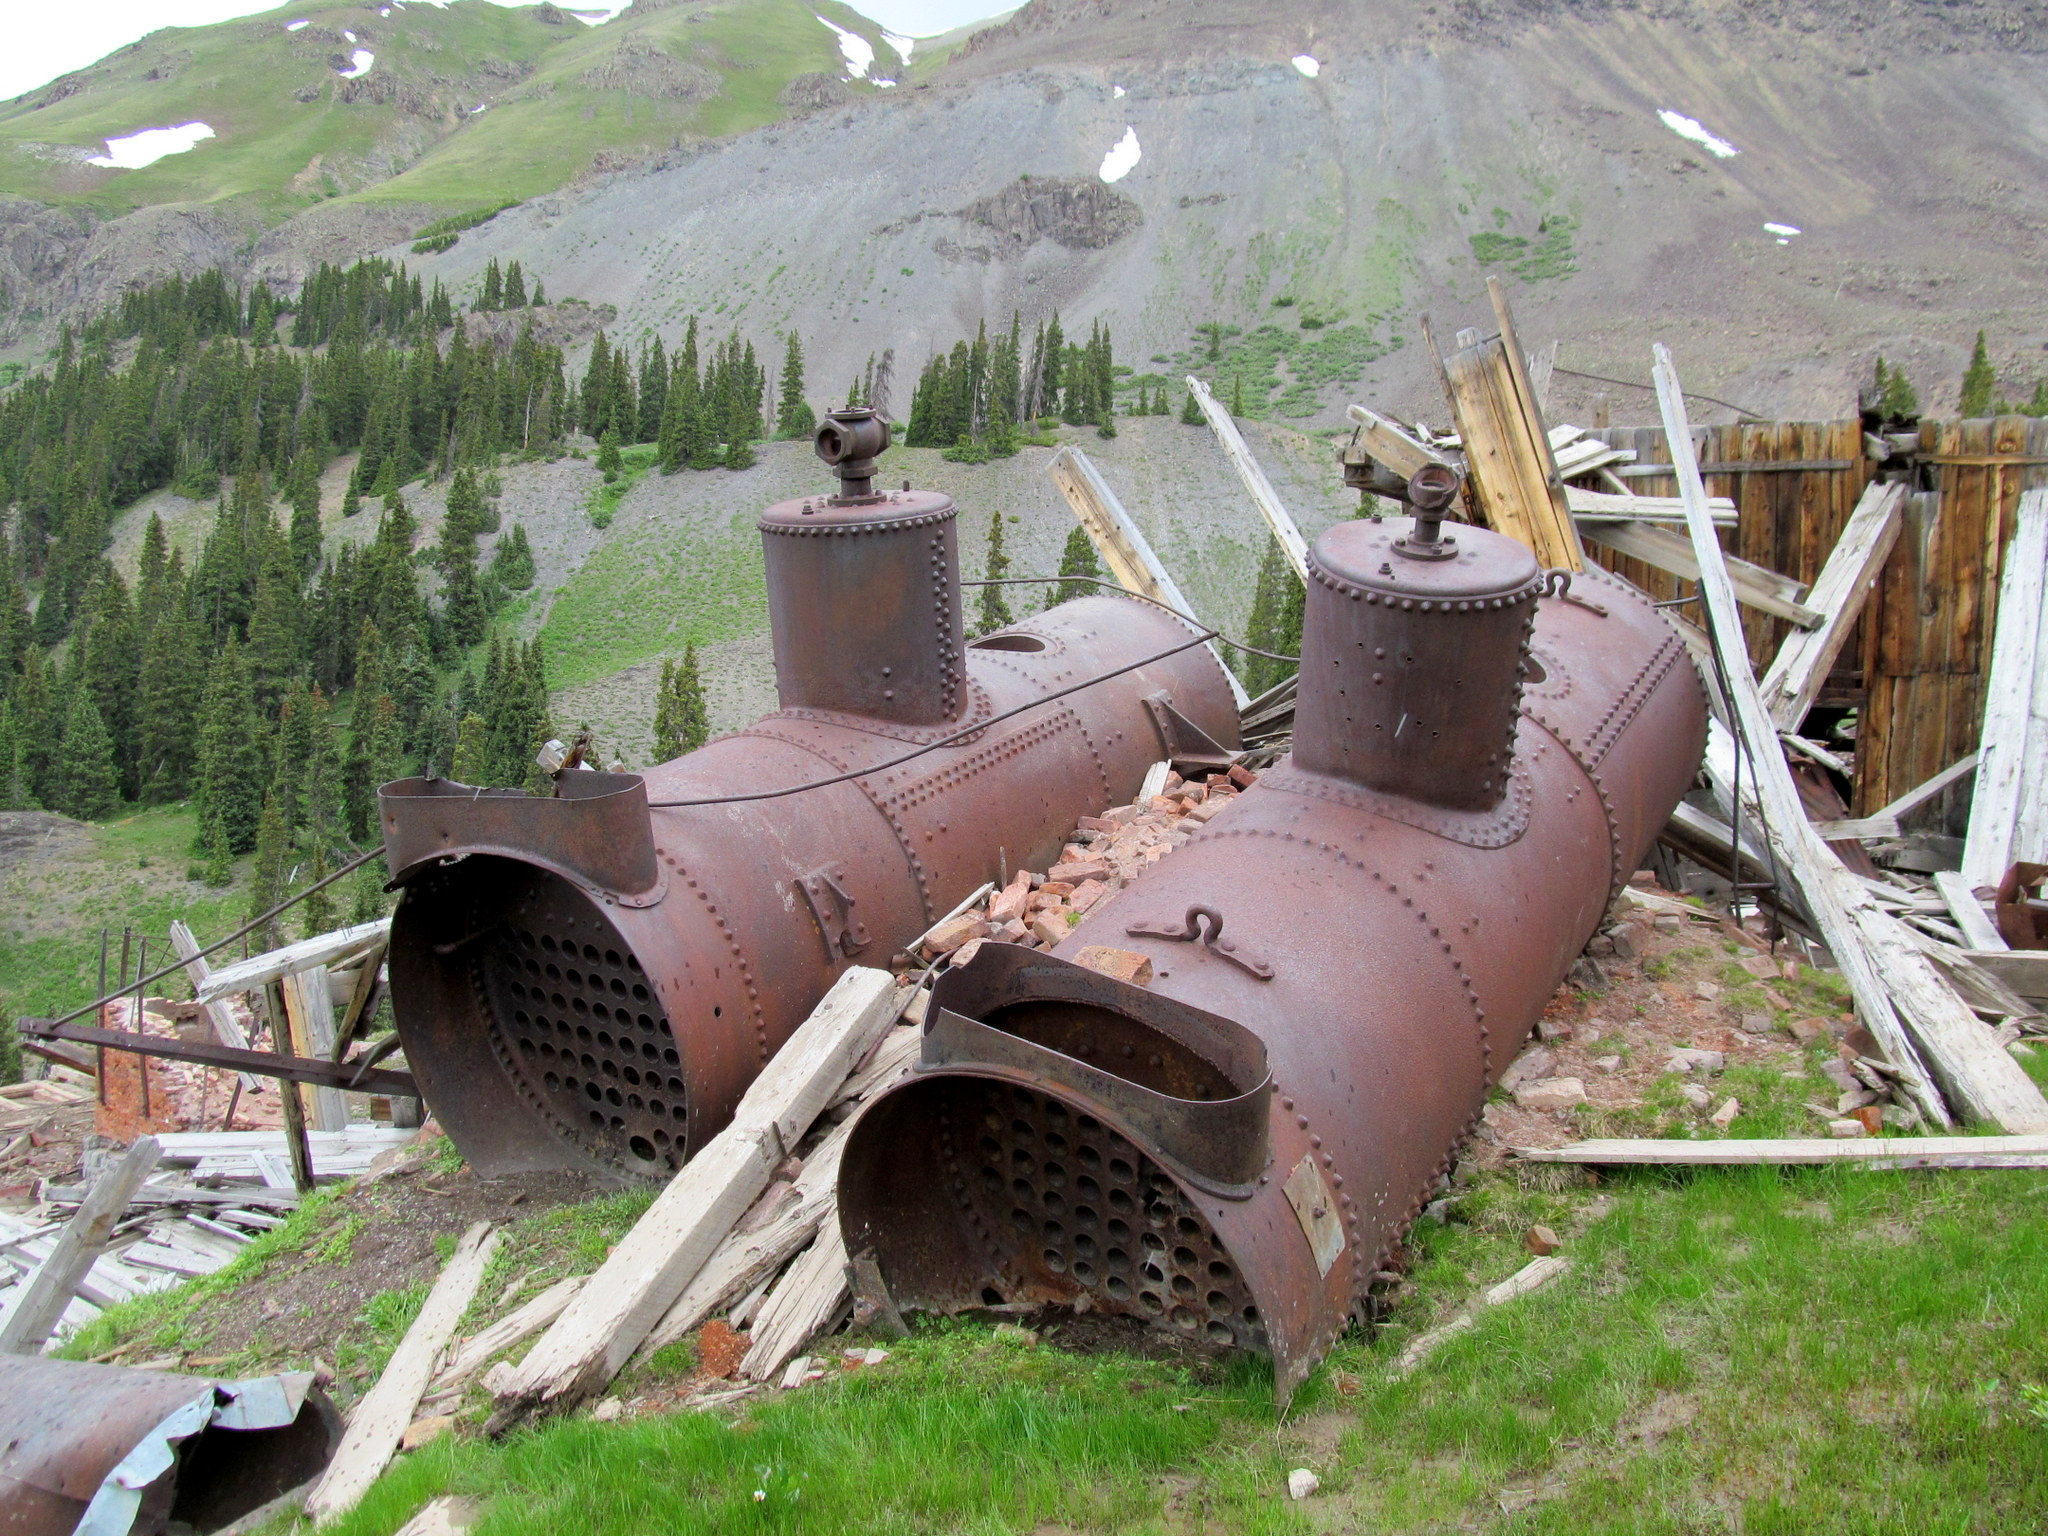 Photo: Steam boilers at the San Juan Chief mill